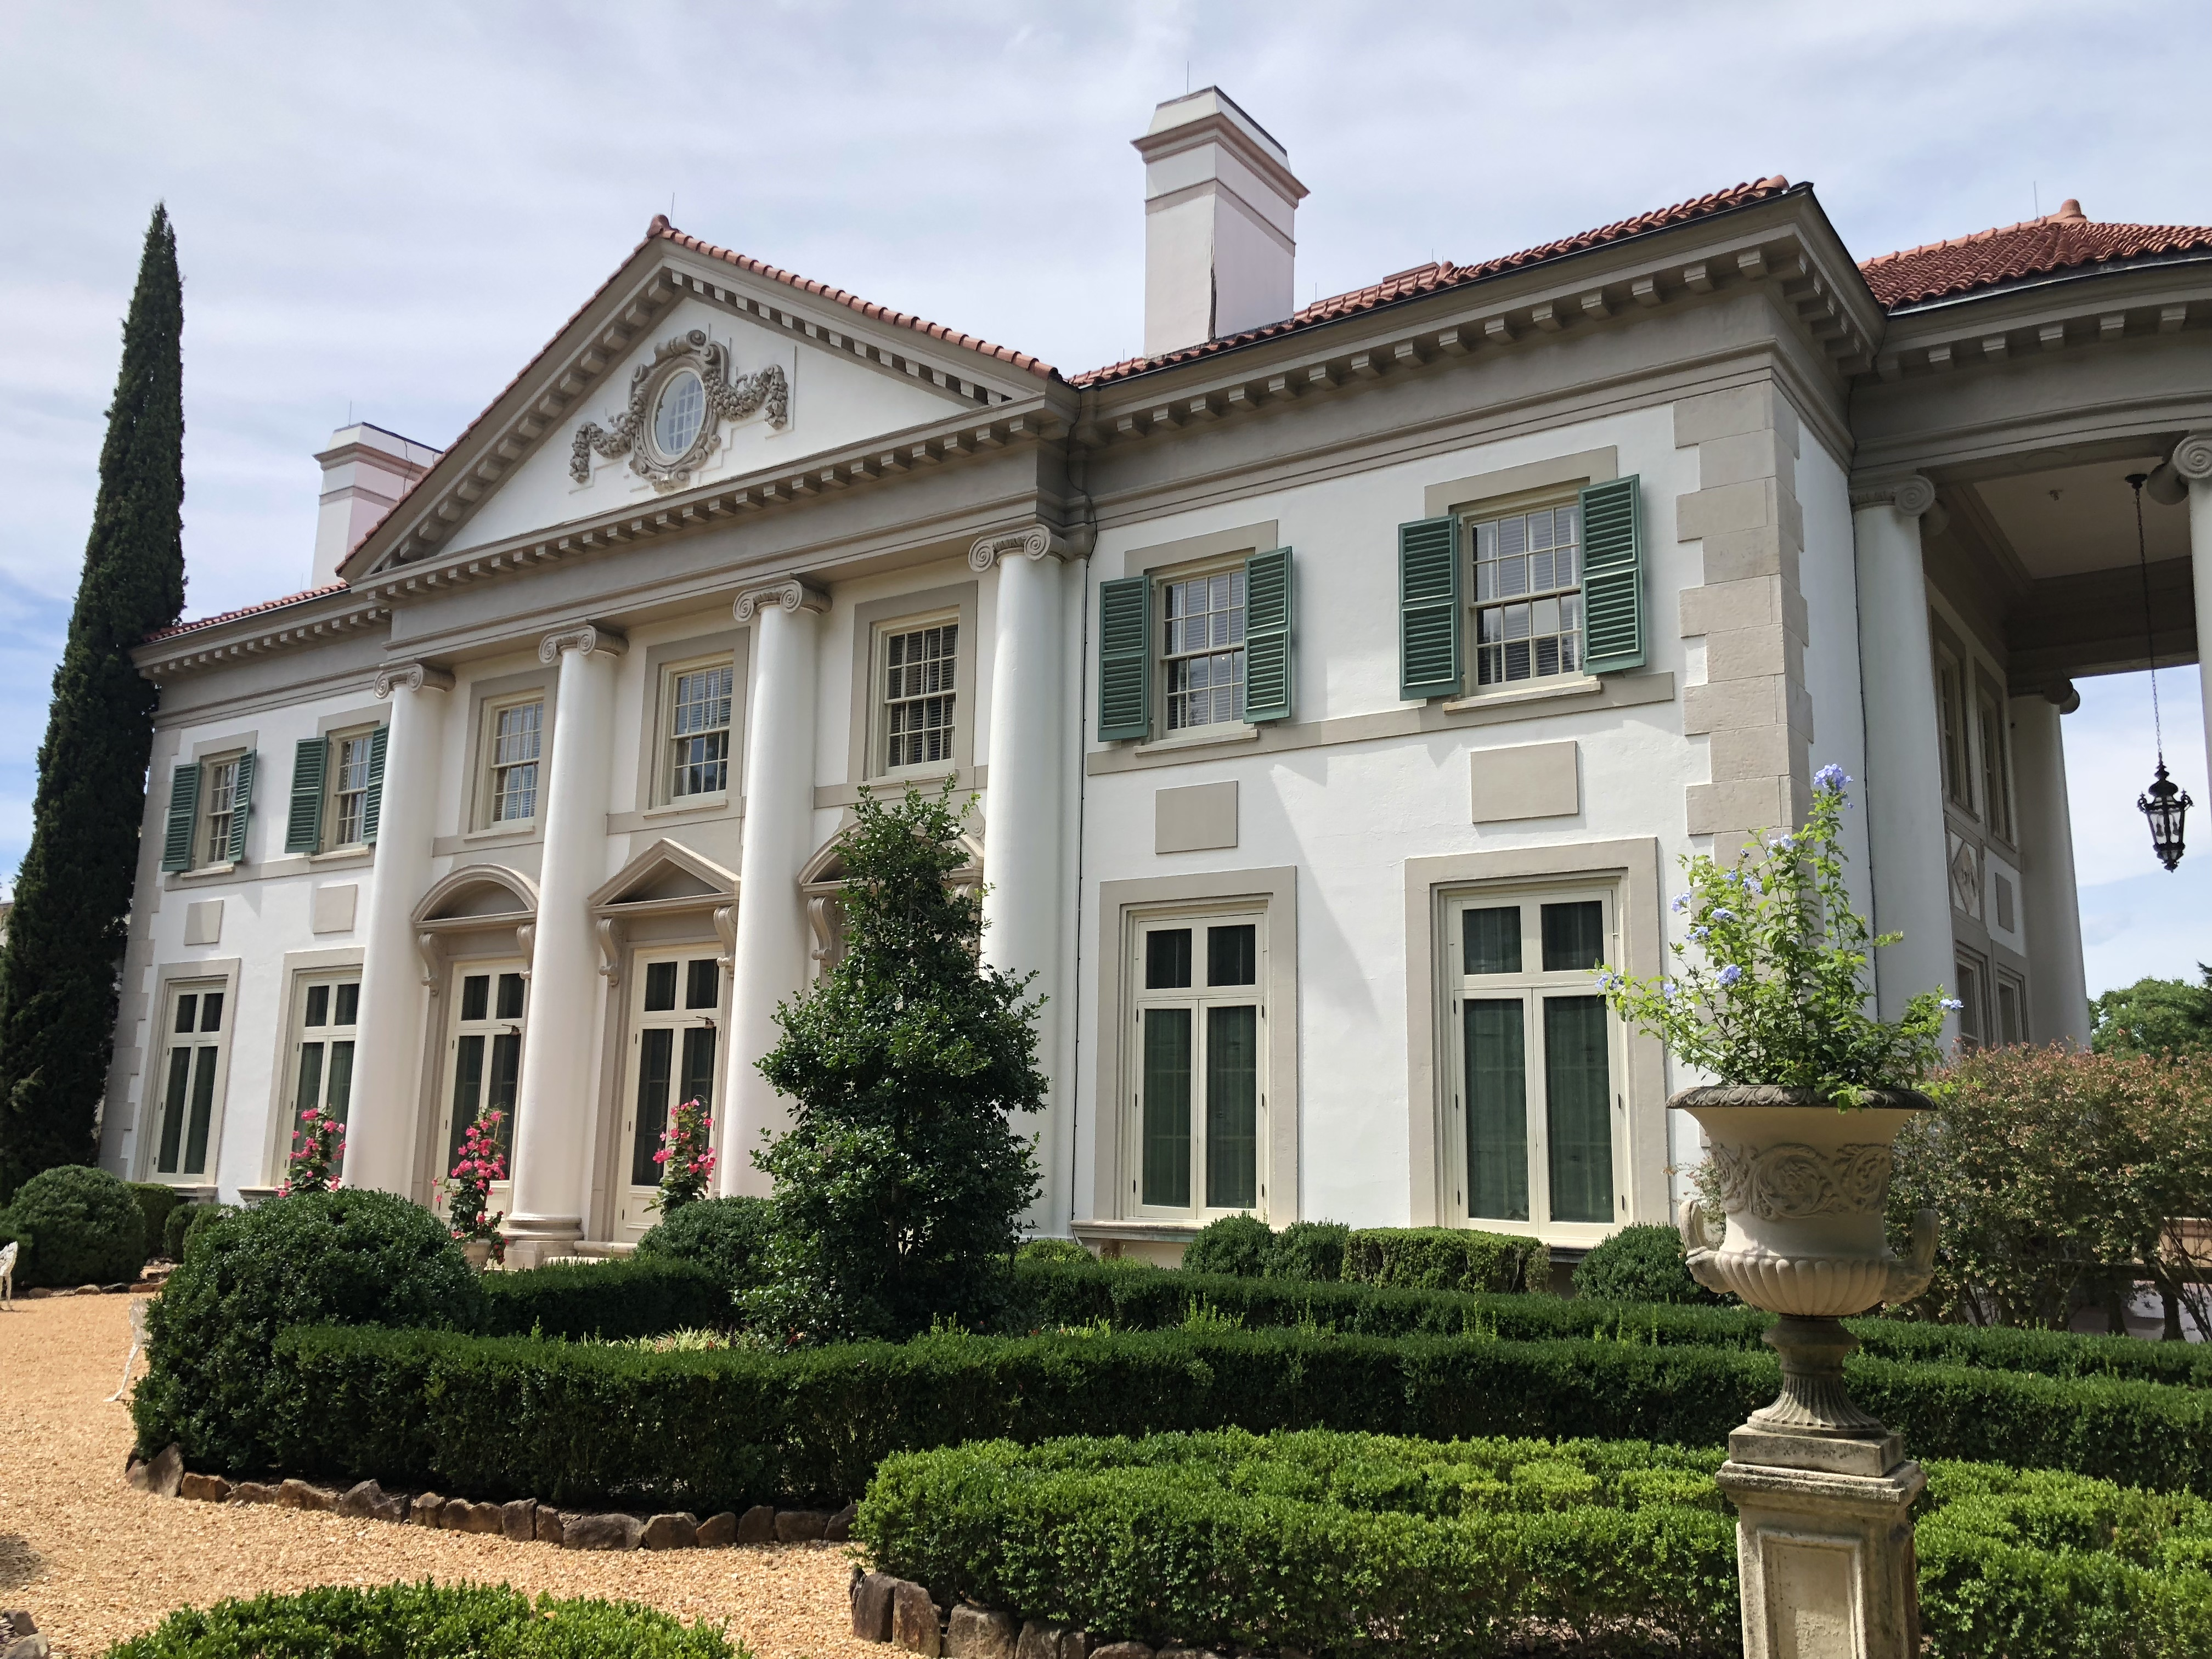 Three-story house with four columns and lots of windows.